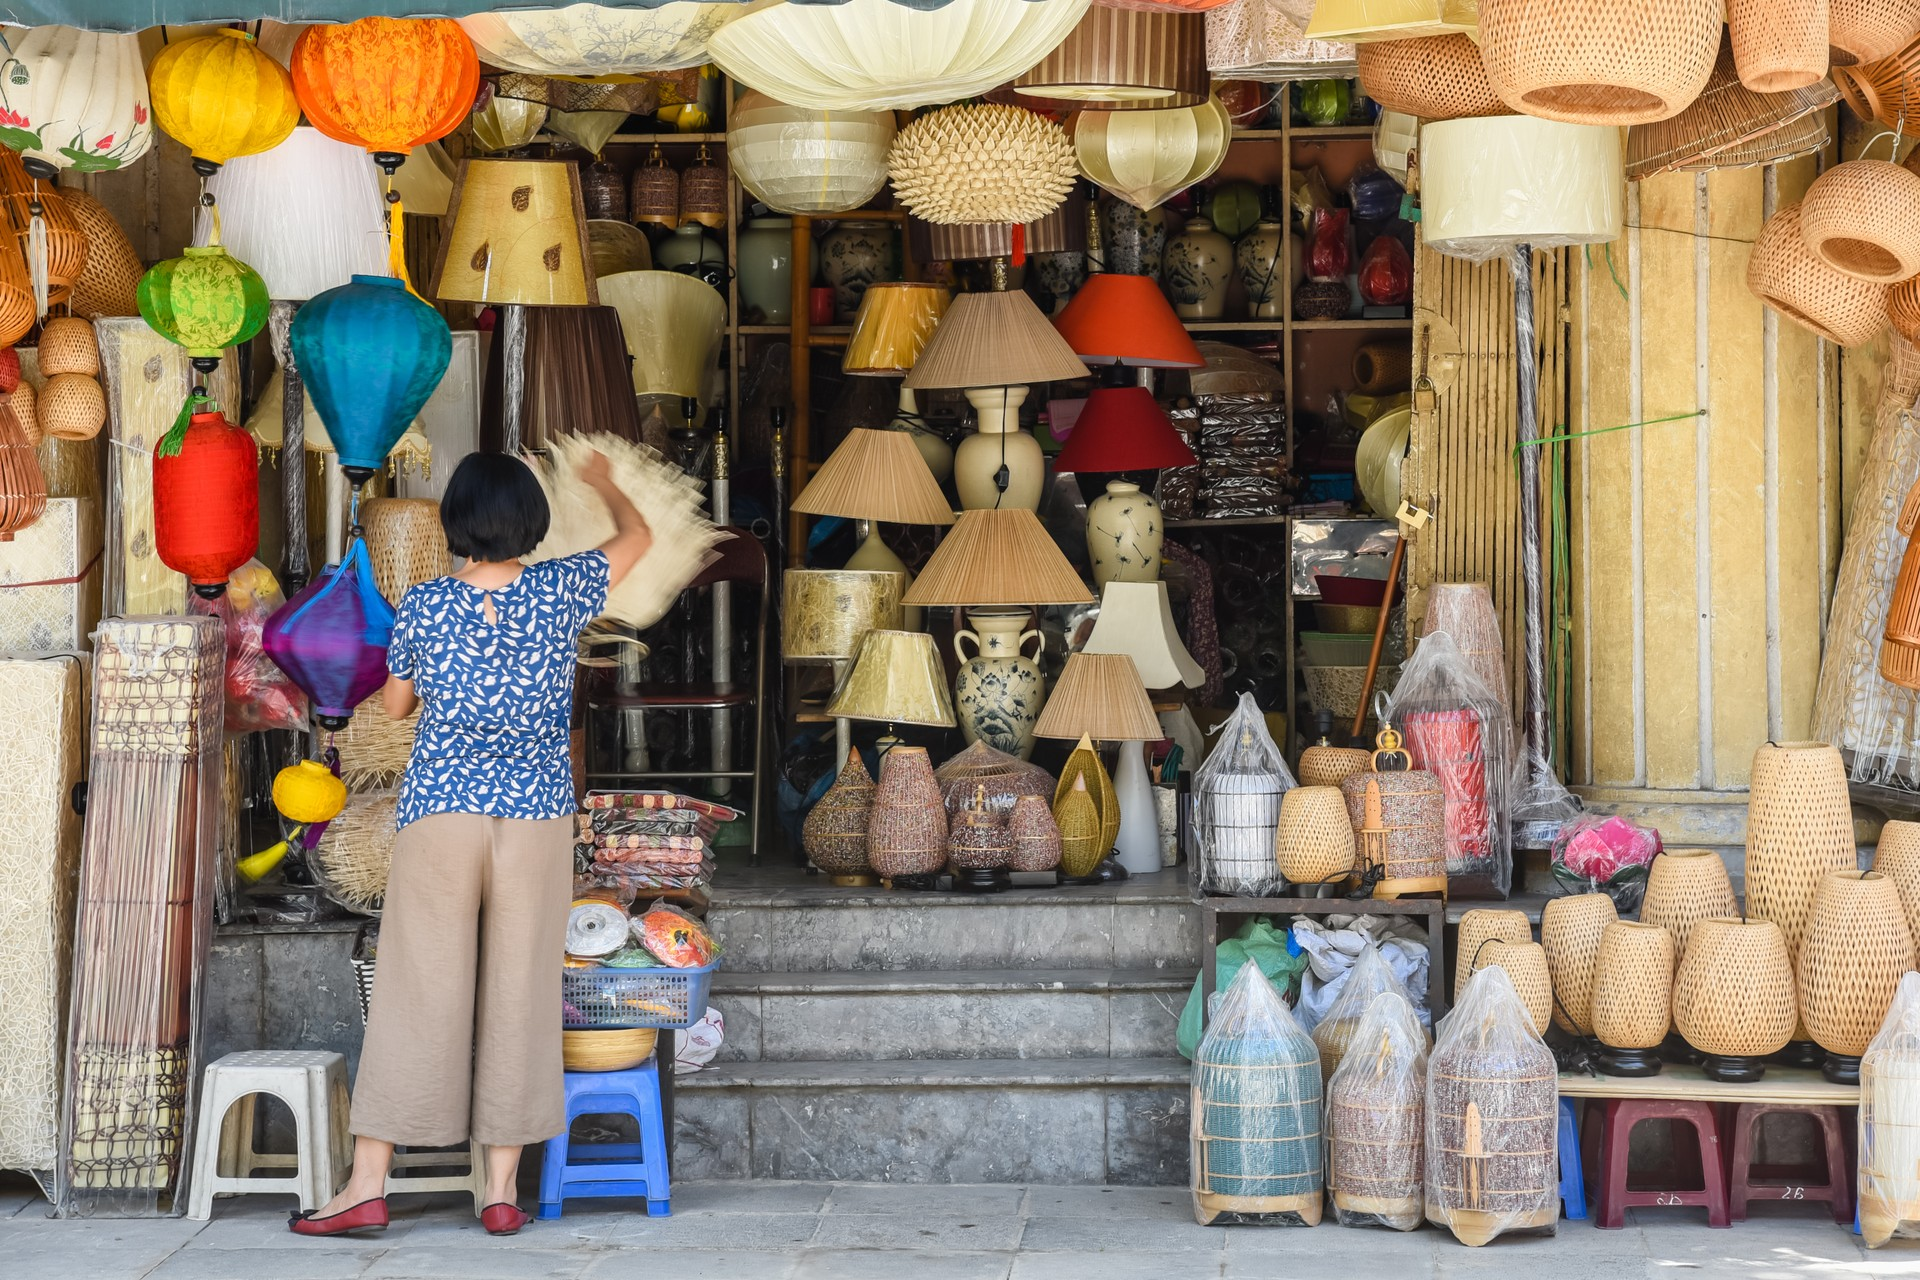 Lampshade stall in Hanoi's Old Quarter